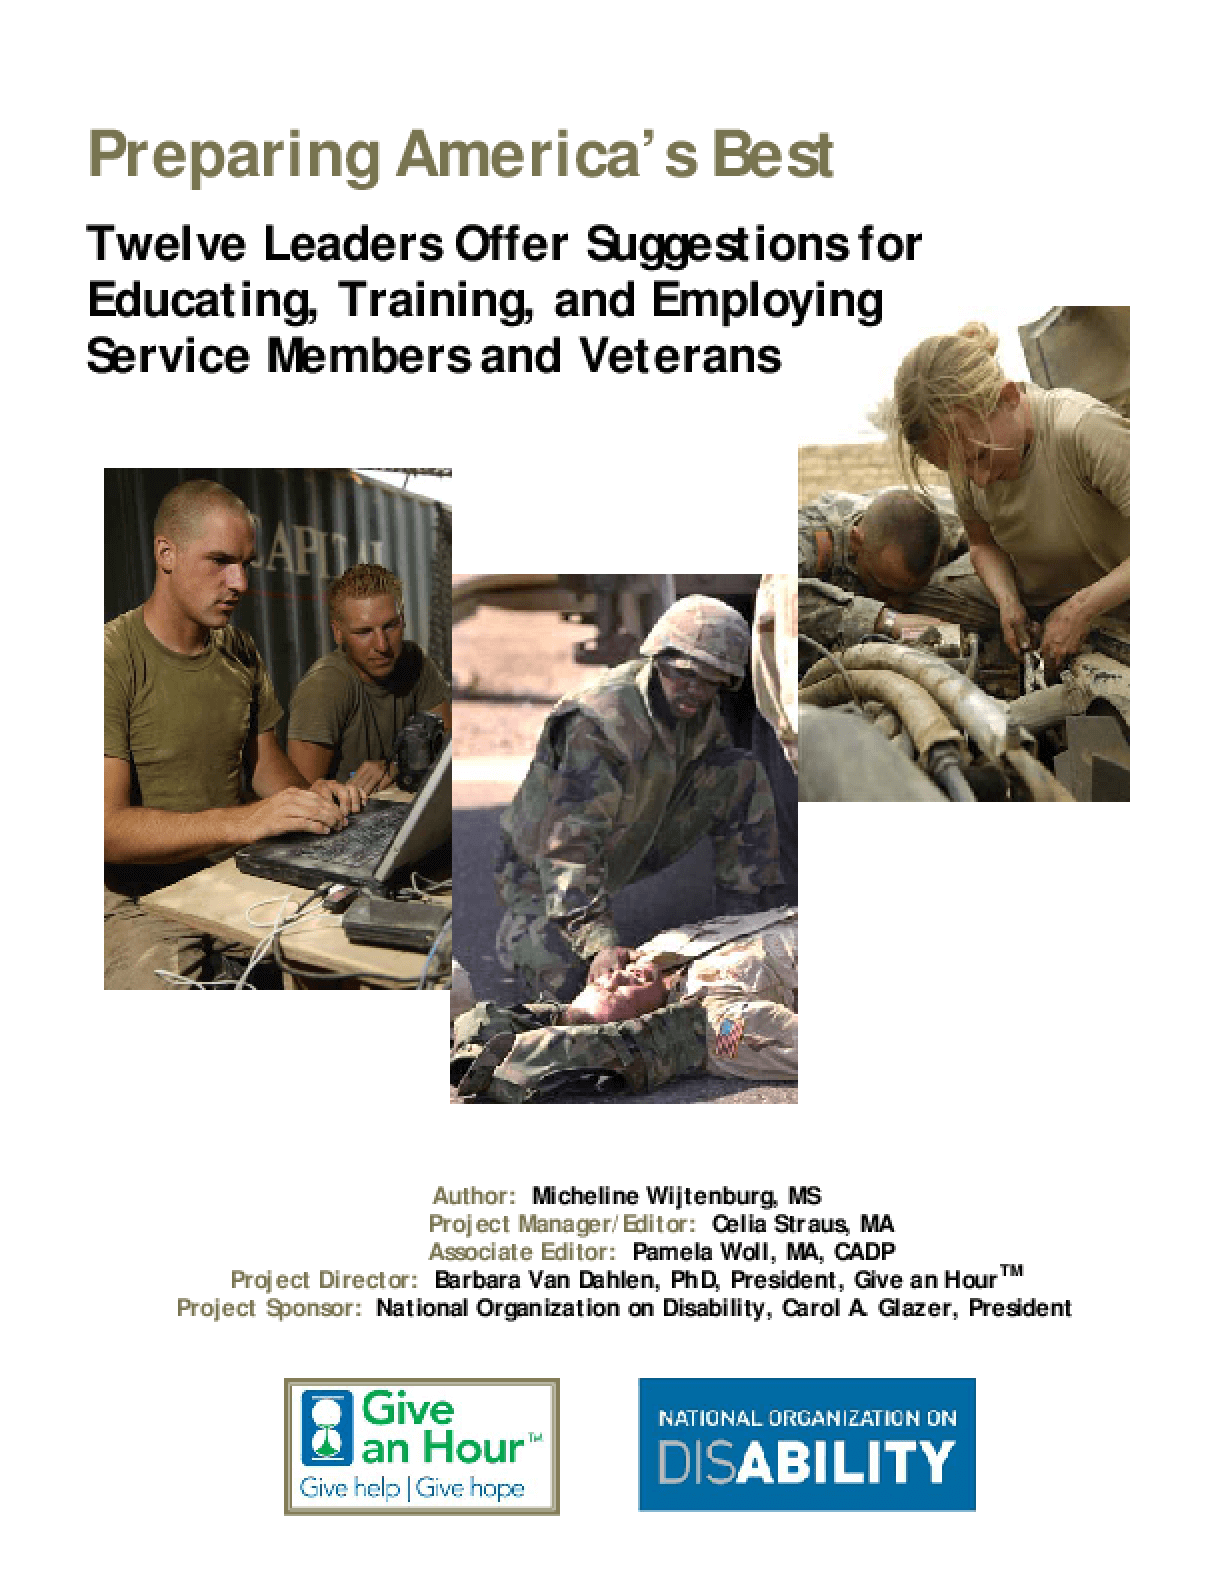 Preparing America's Best: Twelve Leaders Offer Suggestions for Educating, Training, and Employing Service Members and Veterans